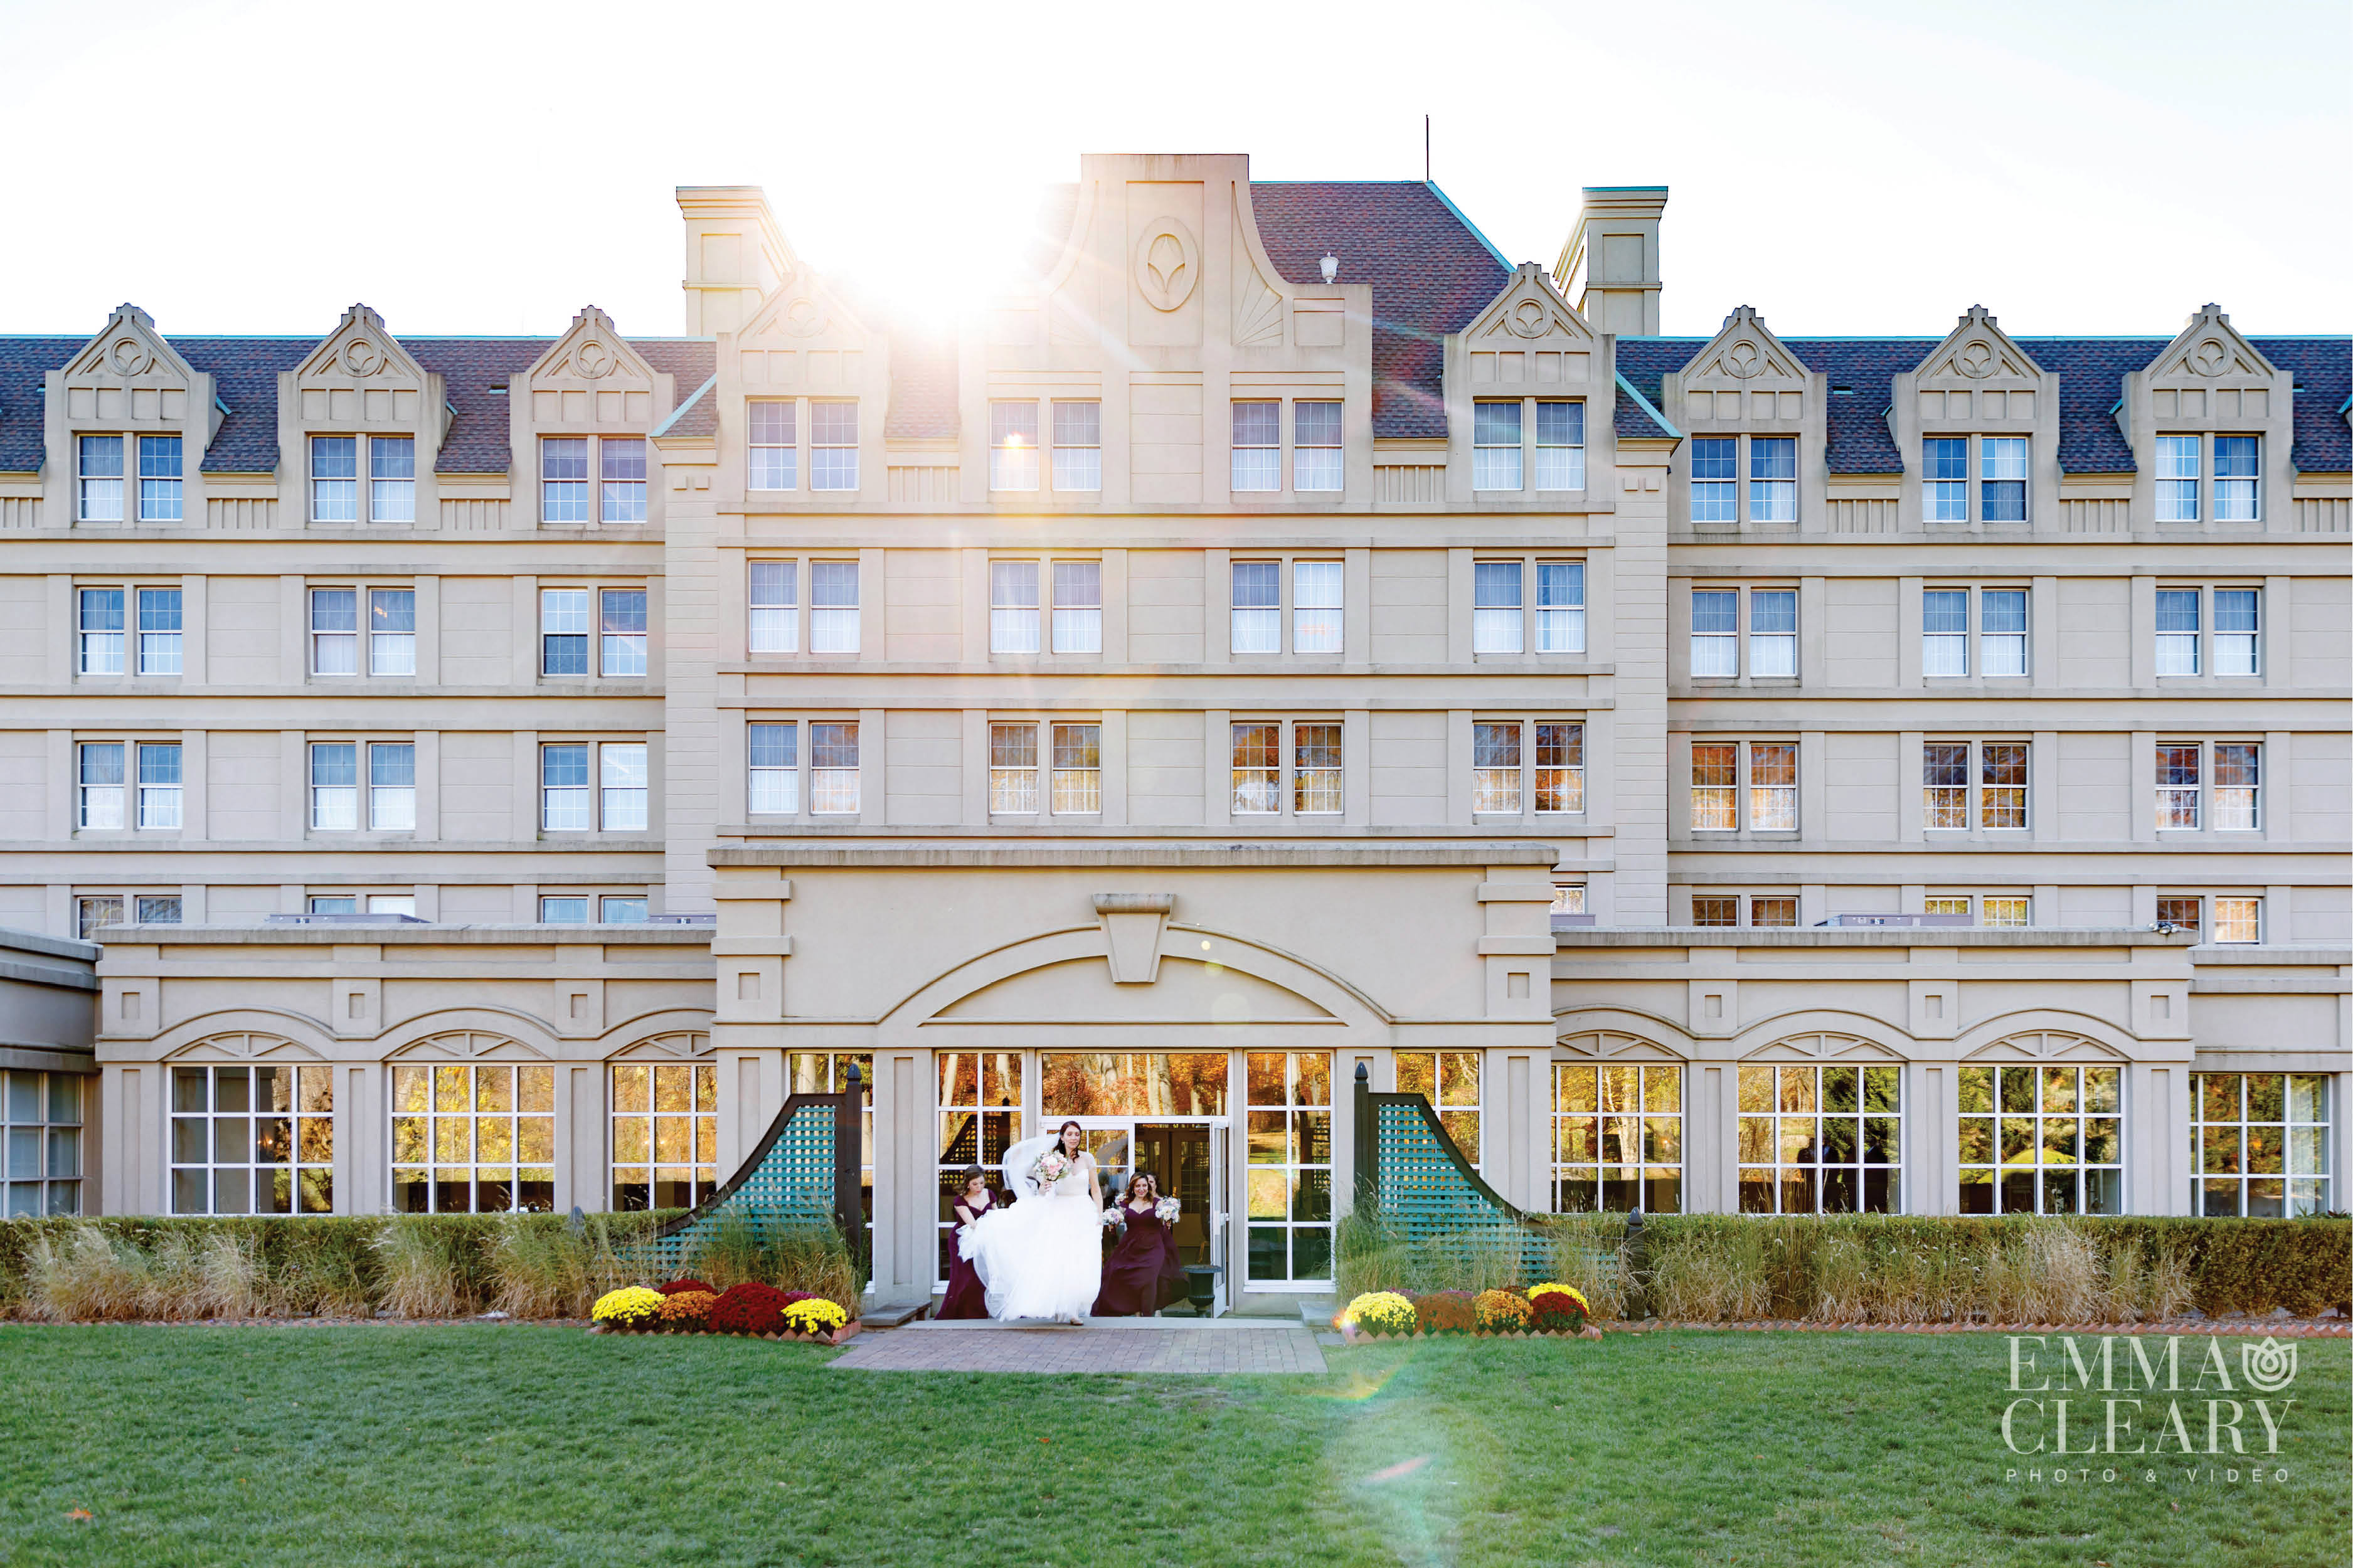 Emma_cleary_photography Hilton pearl river NY wedding9